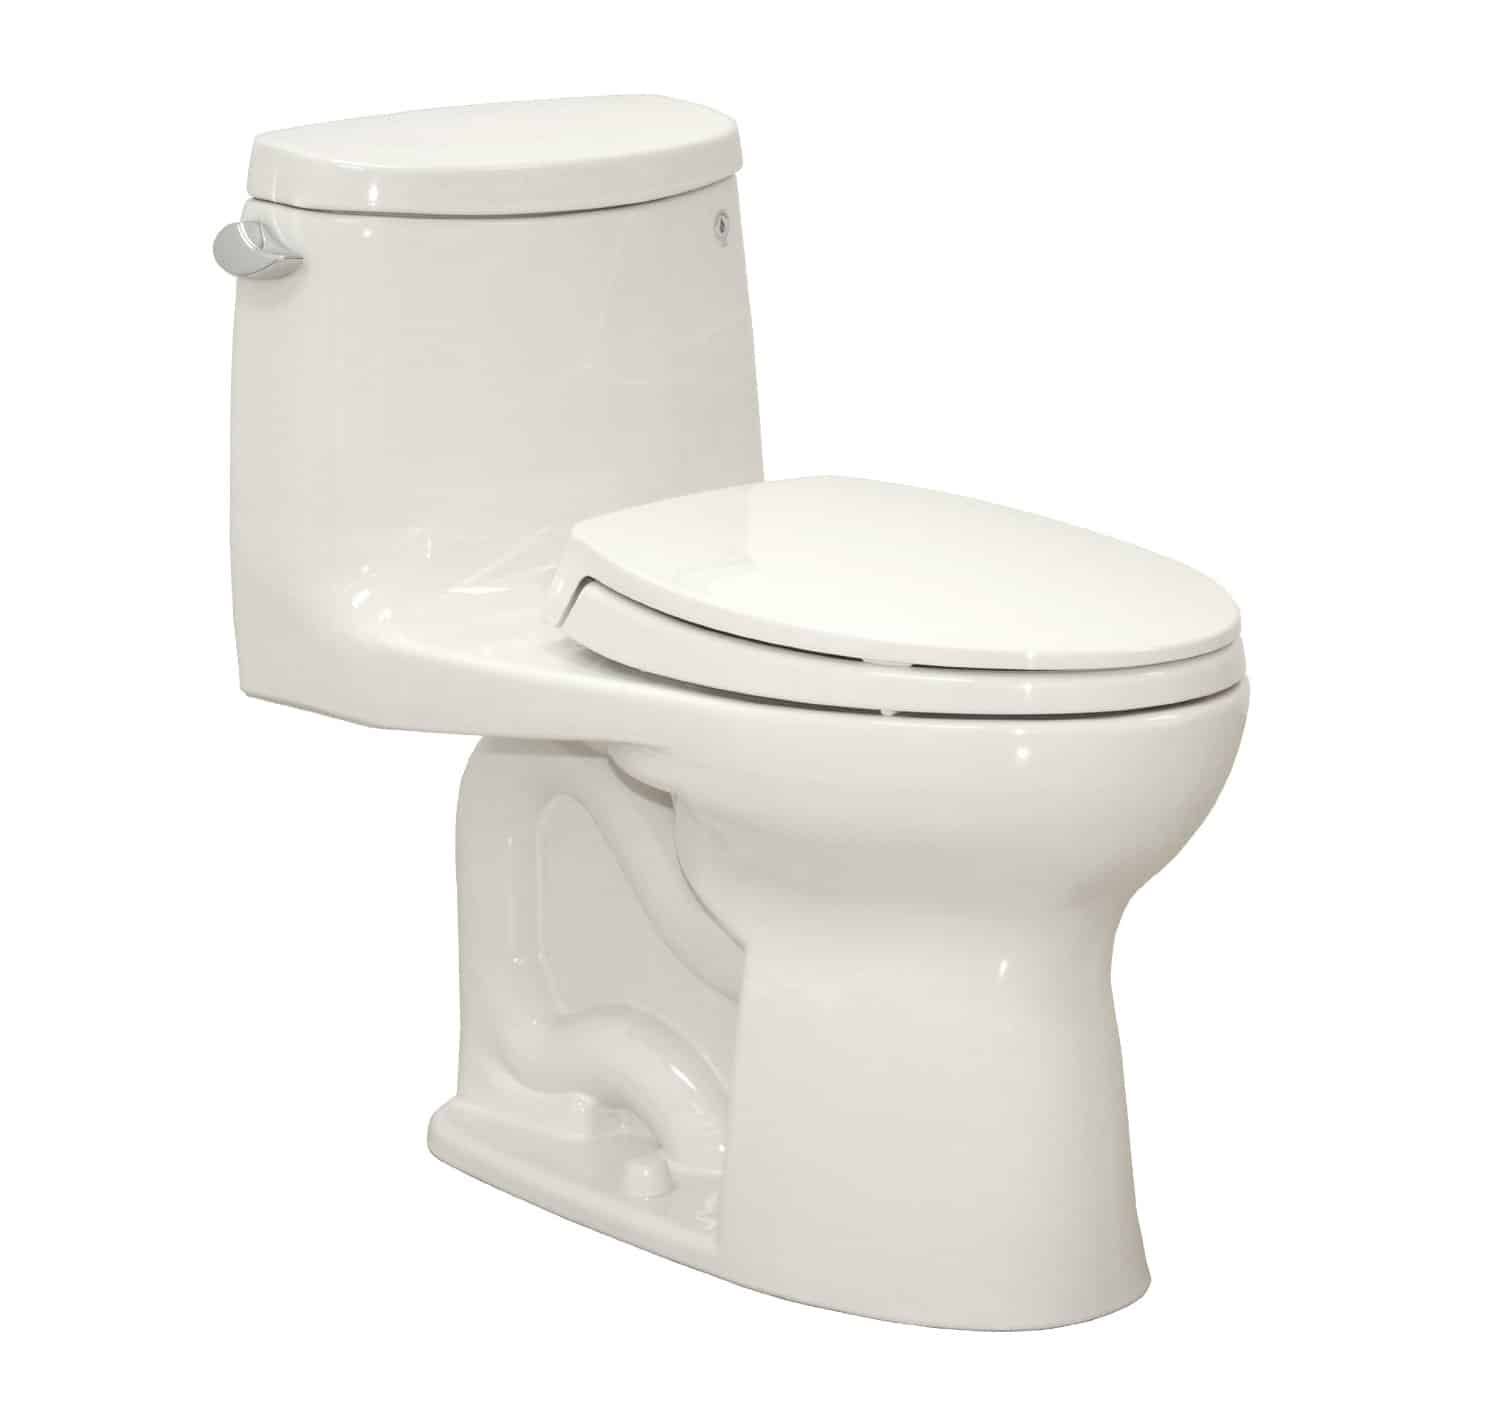 Best toilet on the market reviews - Toto Ms604114cefg 01 Double Cyclone Elongated One Piece Toilet Review